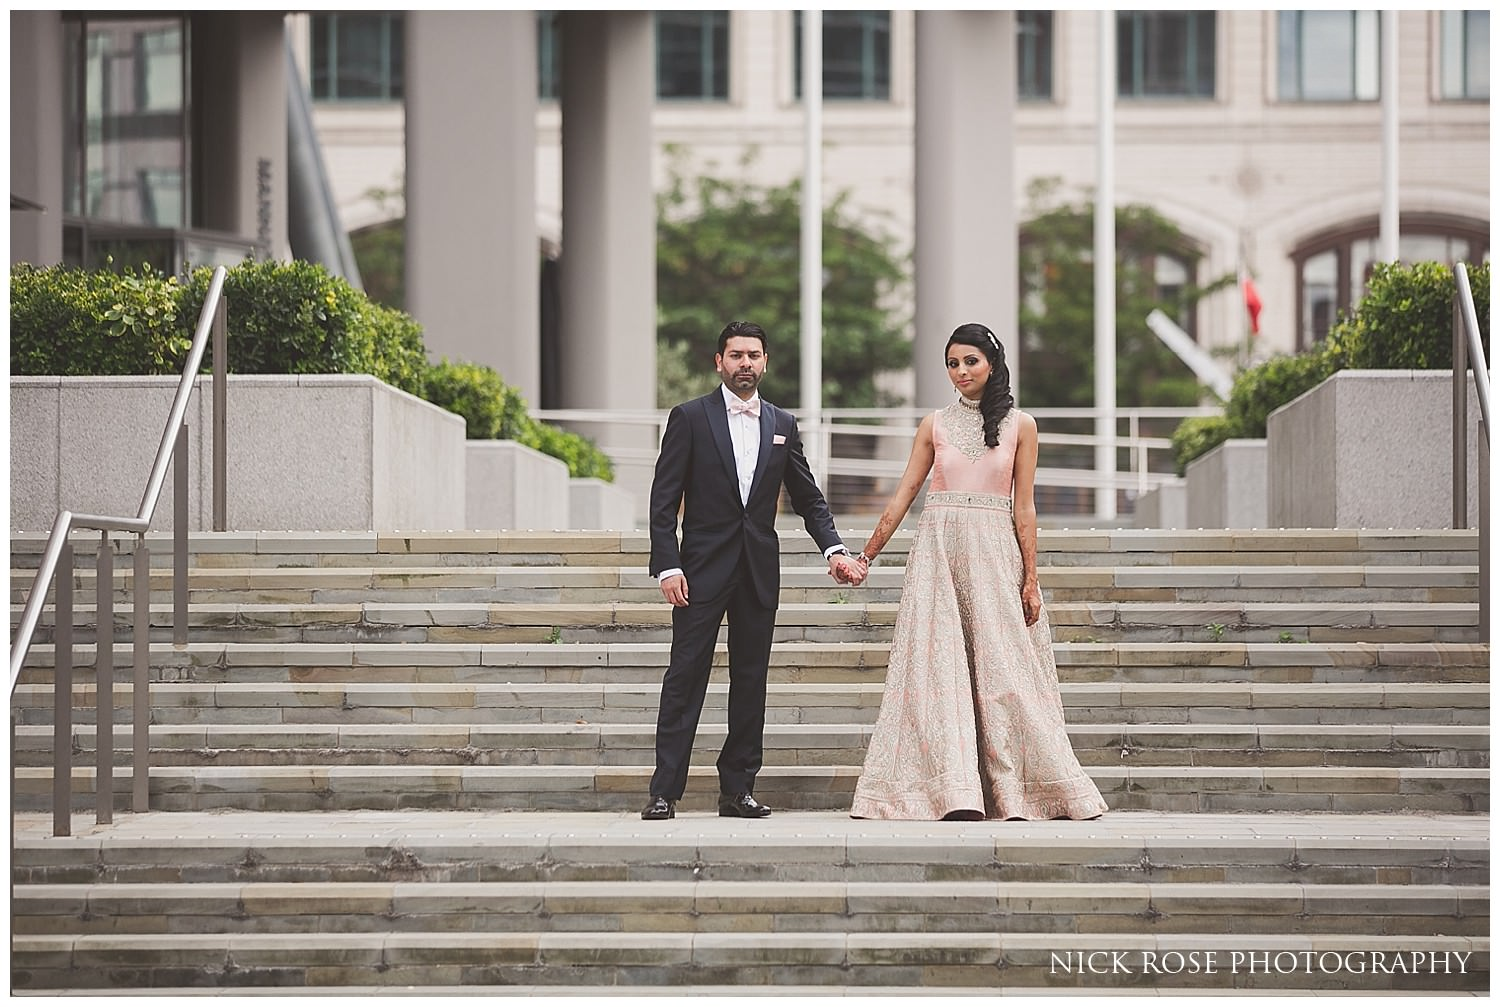 Asian bride and groom photograph before their Indian wedding reception in Canary Wharf London